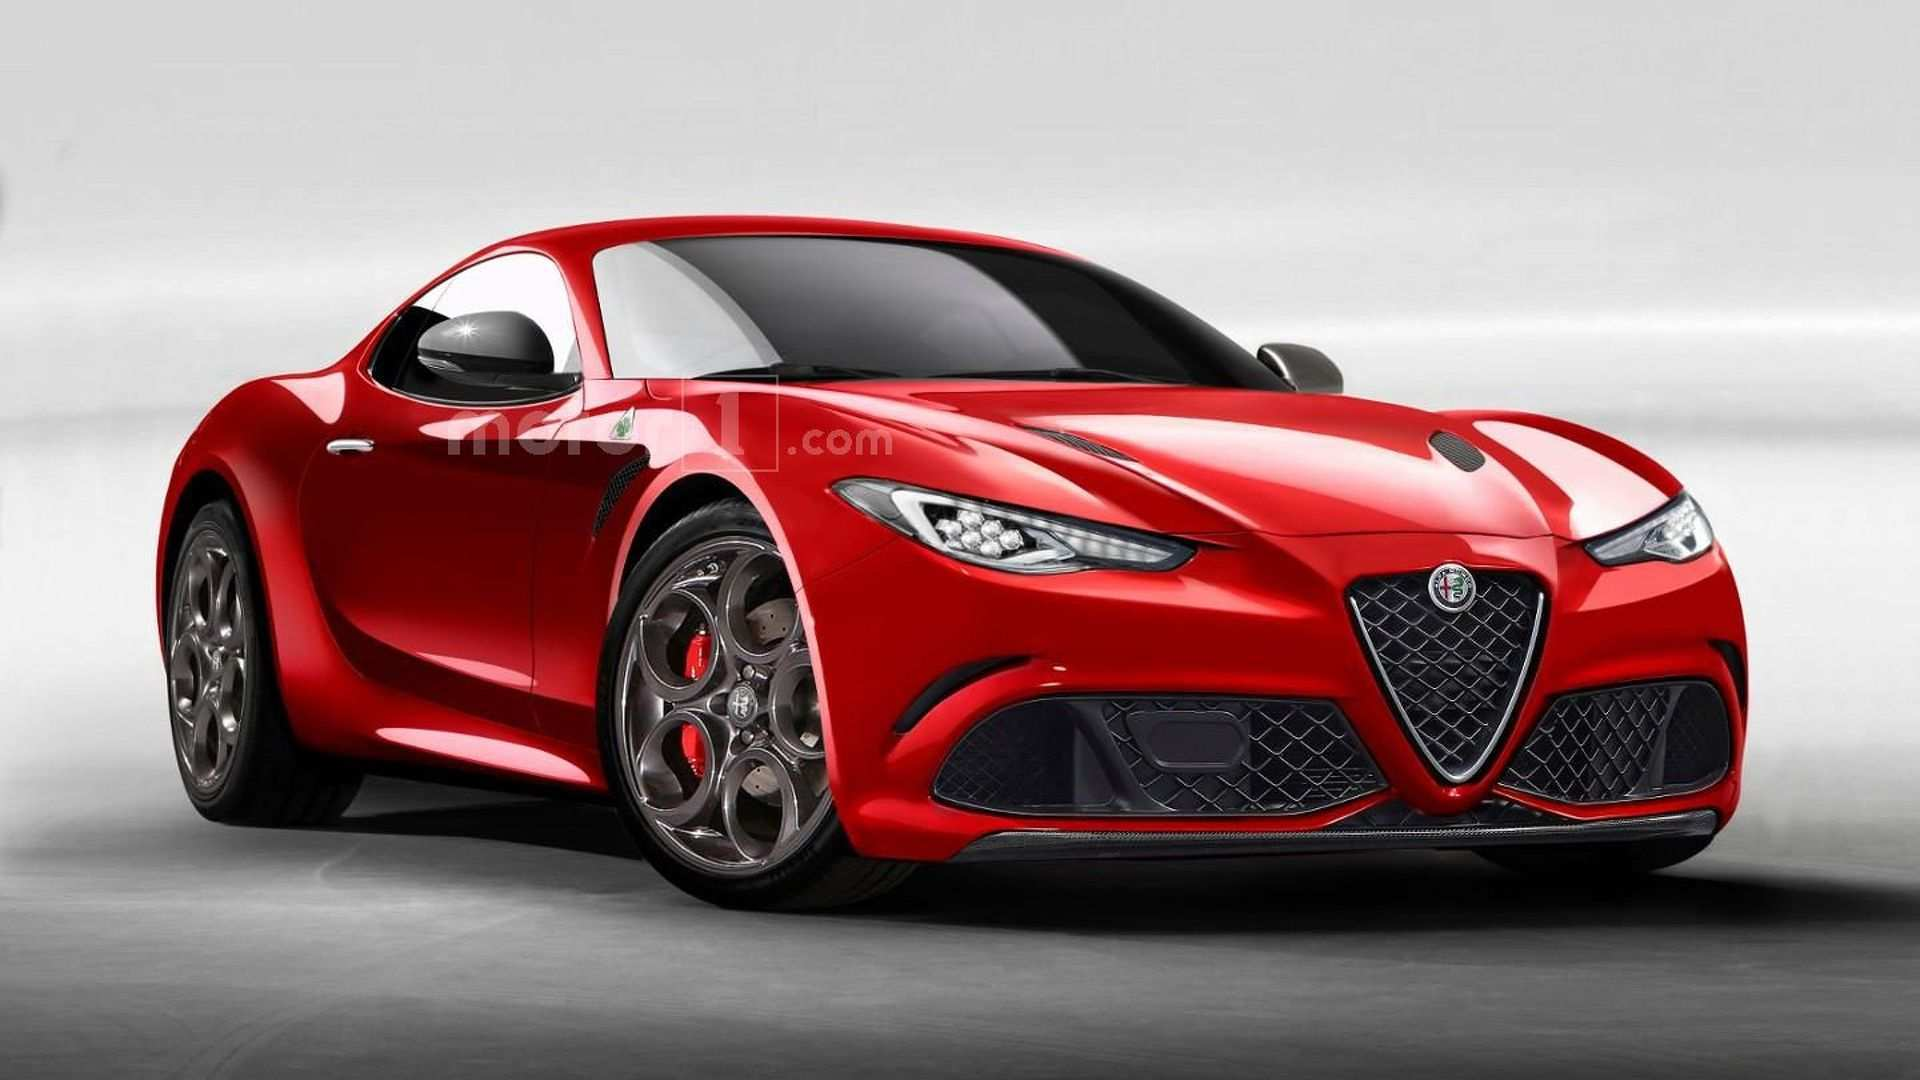 99 Concept of Alfa Gt 2019 Pictures for Alfa Gt 2019